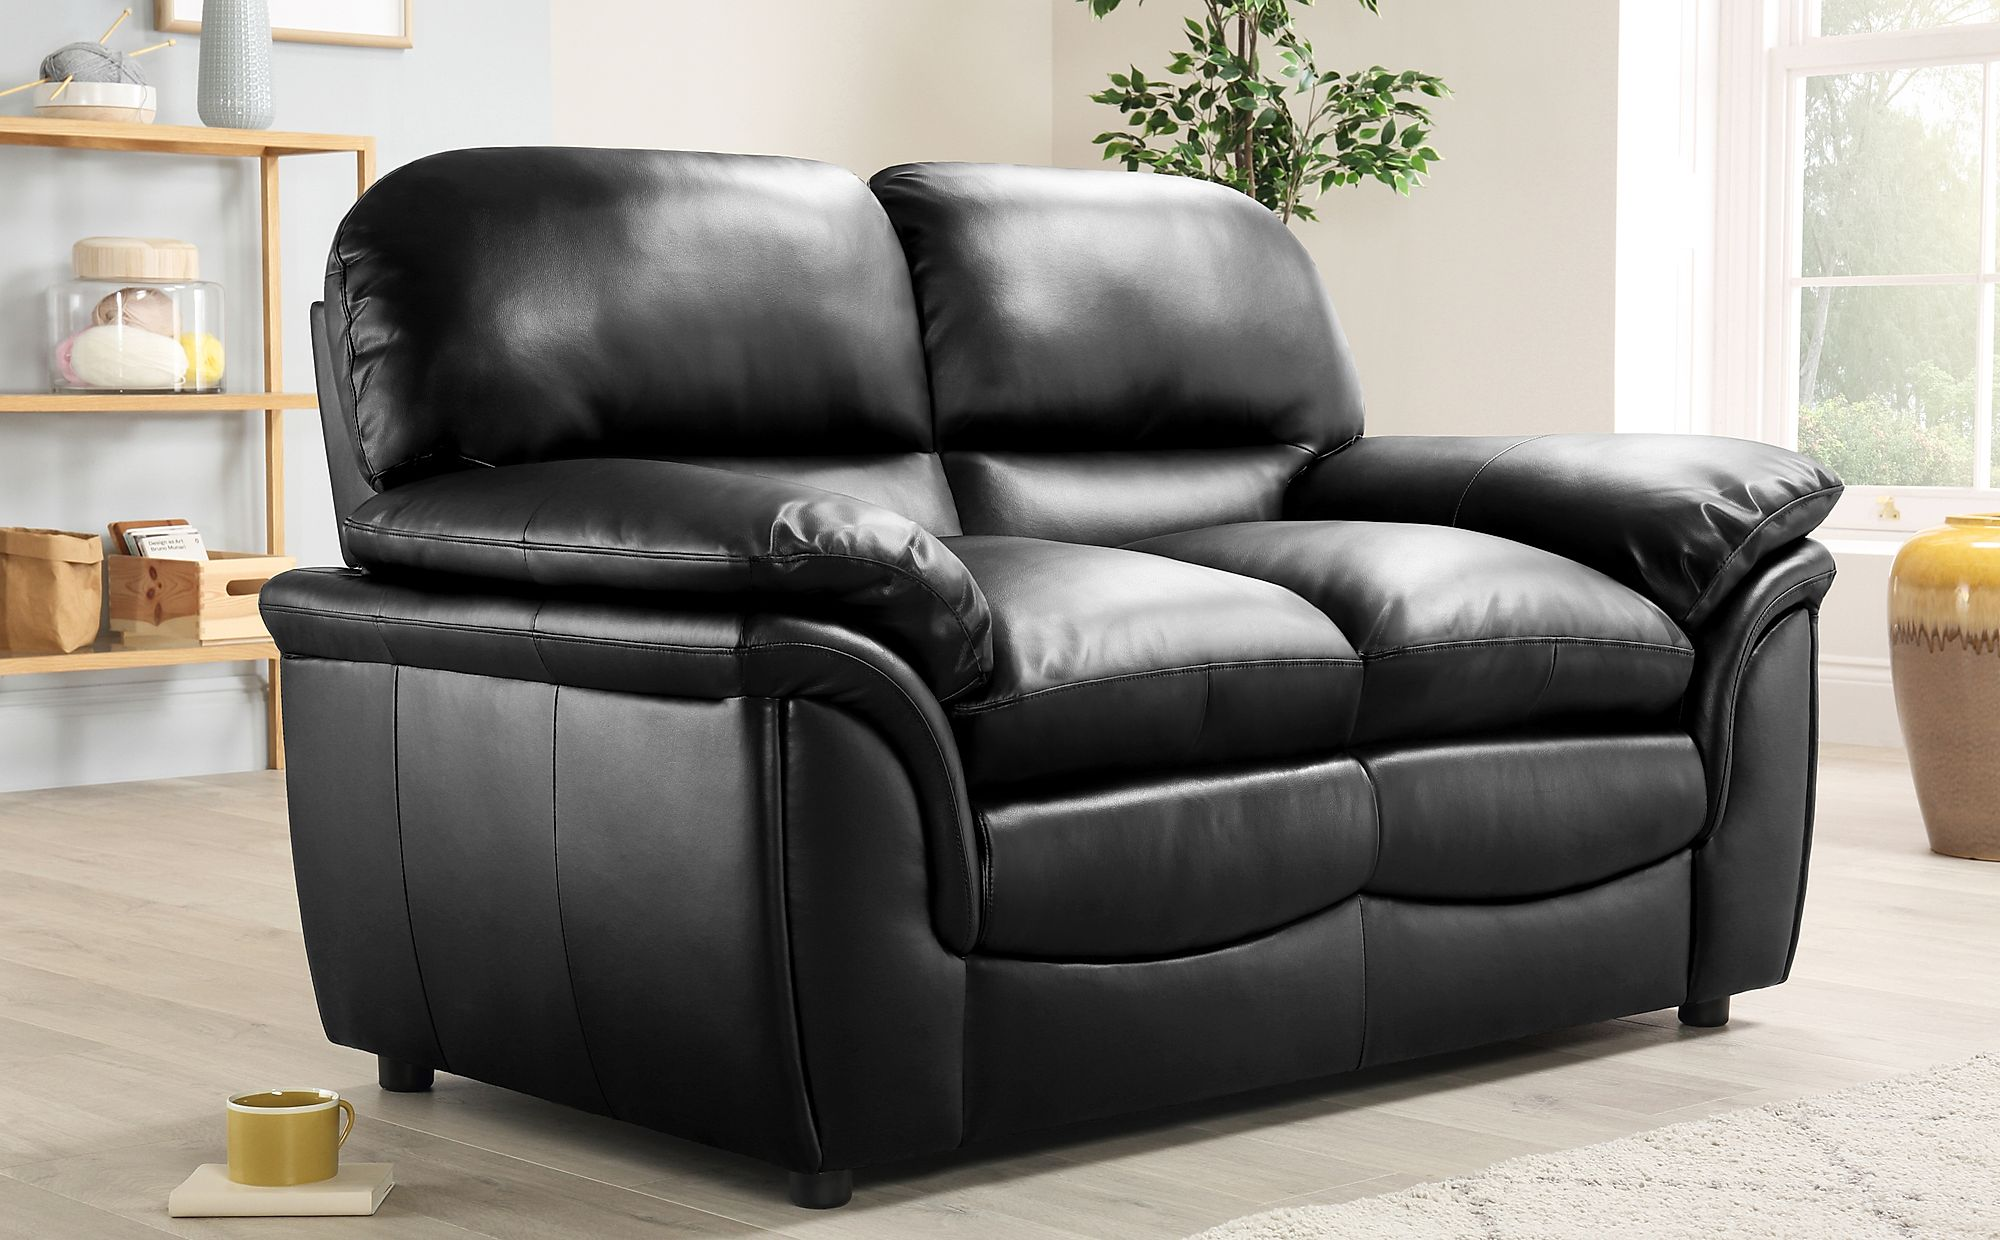 Rochester Black Leather 2 Seater Sofa Only 399 99 Furniture Choice